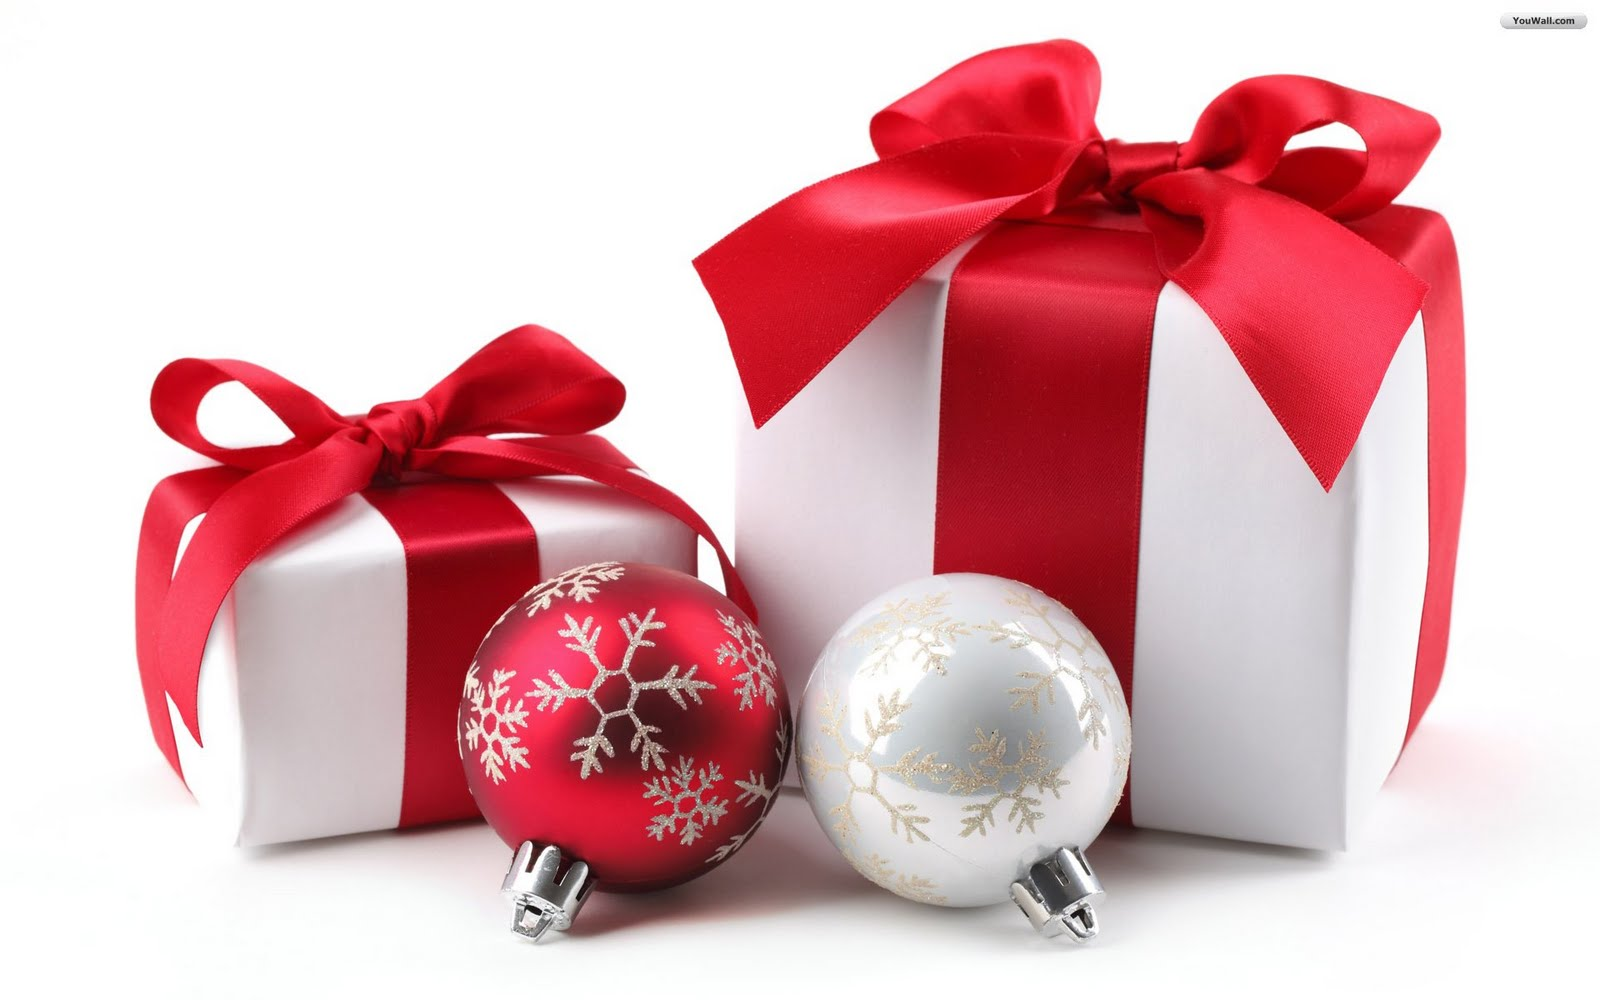 Wallpapers Background Christmas Gifts Wallpapers Christmas 1600x1000